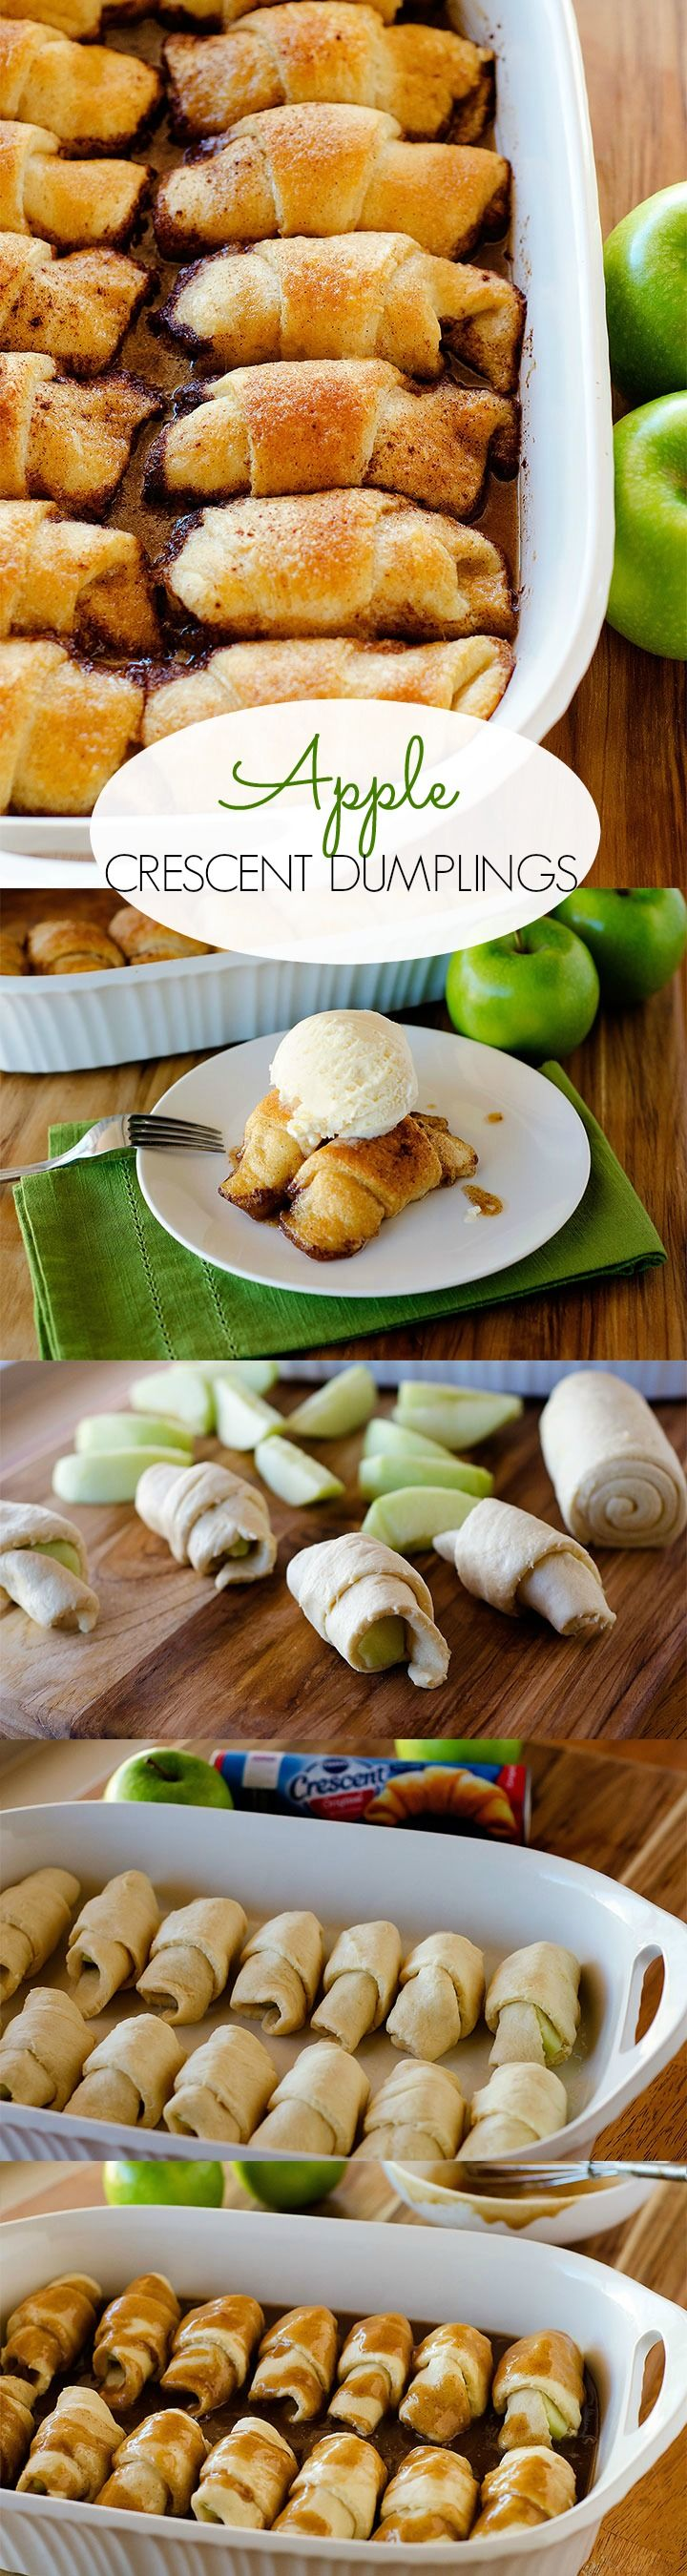 Happy Friday! Woot Woot This has been a loooong week for me, so I'm a very happy girl the weekend is here. Before I sign off for the day I wanted to share these Apple Crescent Dumplings I made for Pillsbury! Flaky crescent dough wrapped around green apple slices then baked in the most delicious... Read More »